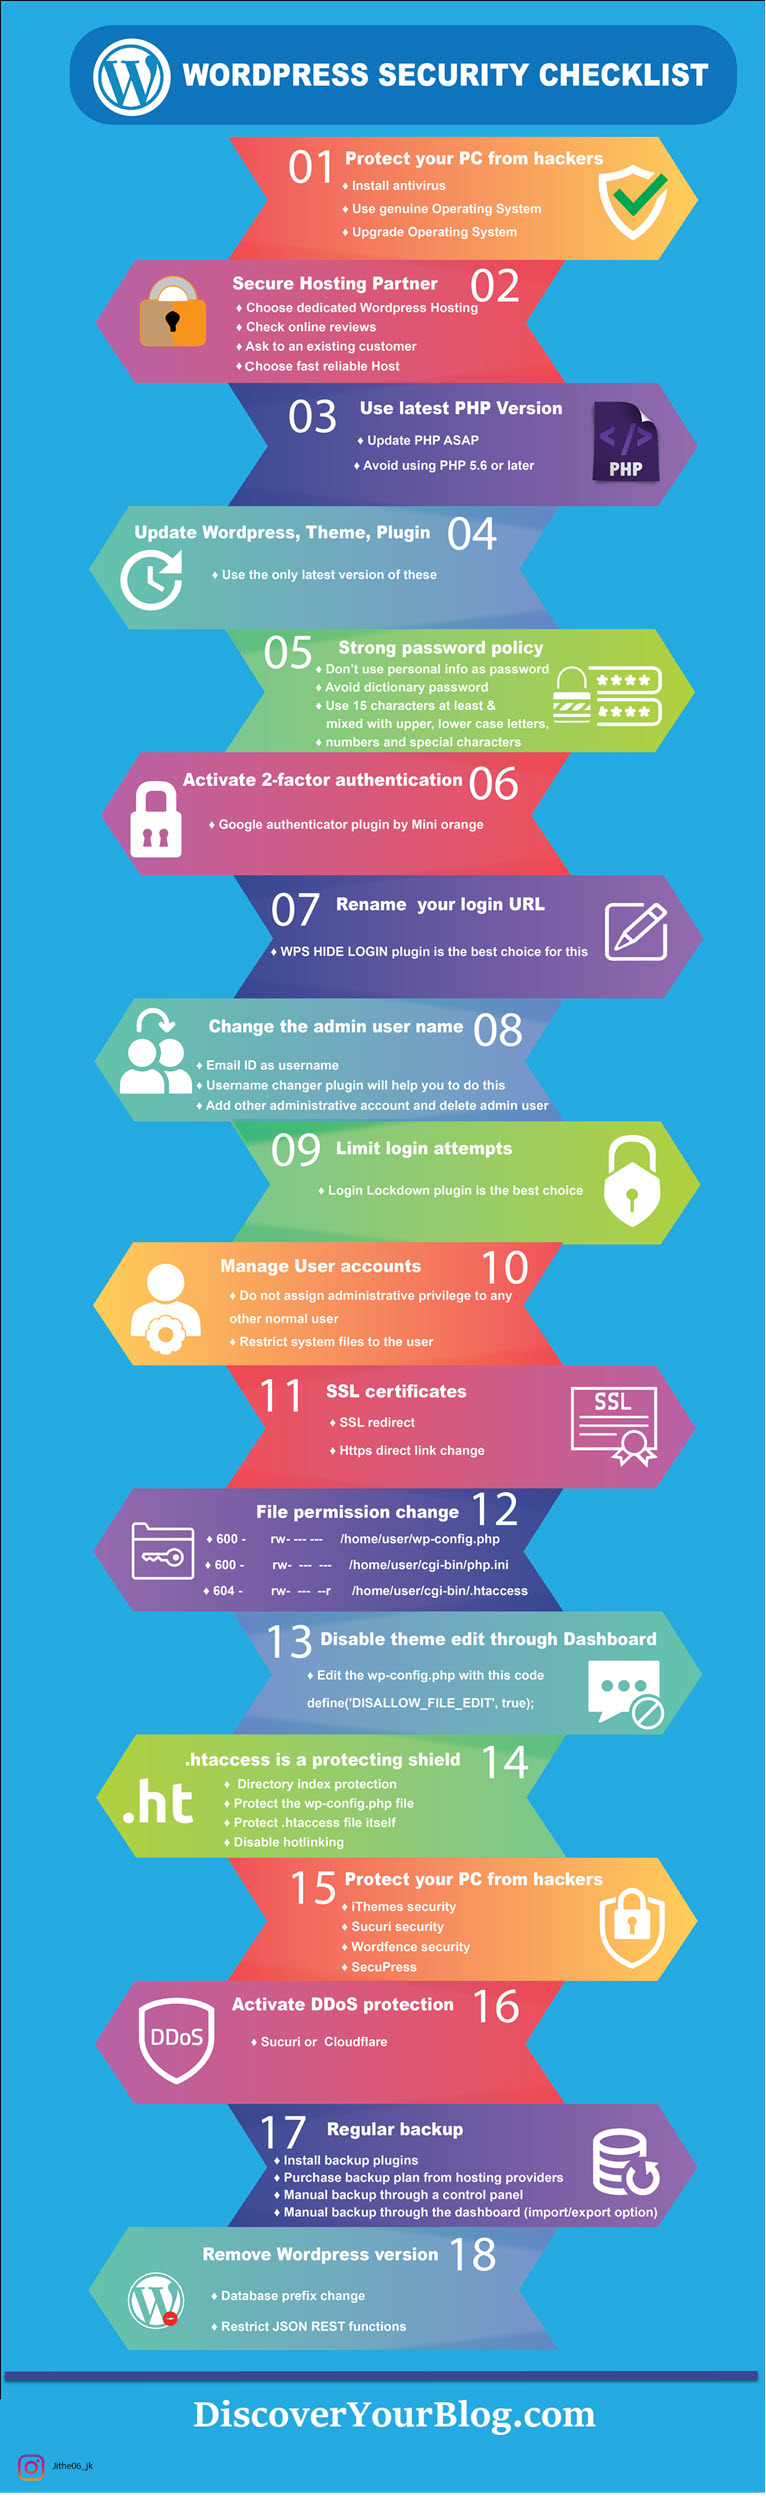 WordPress security ultimate guide [Infographic]